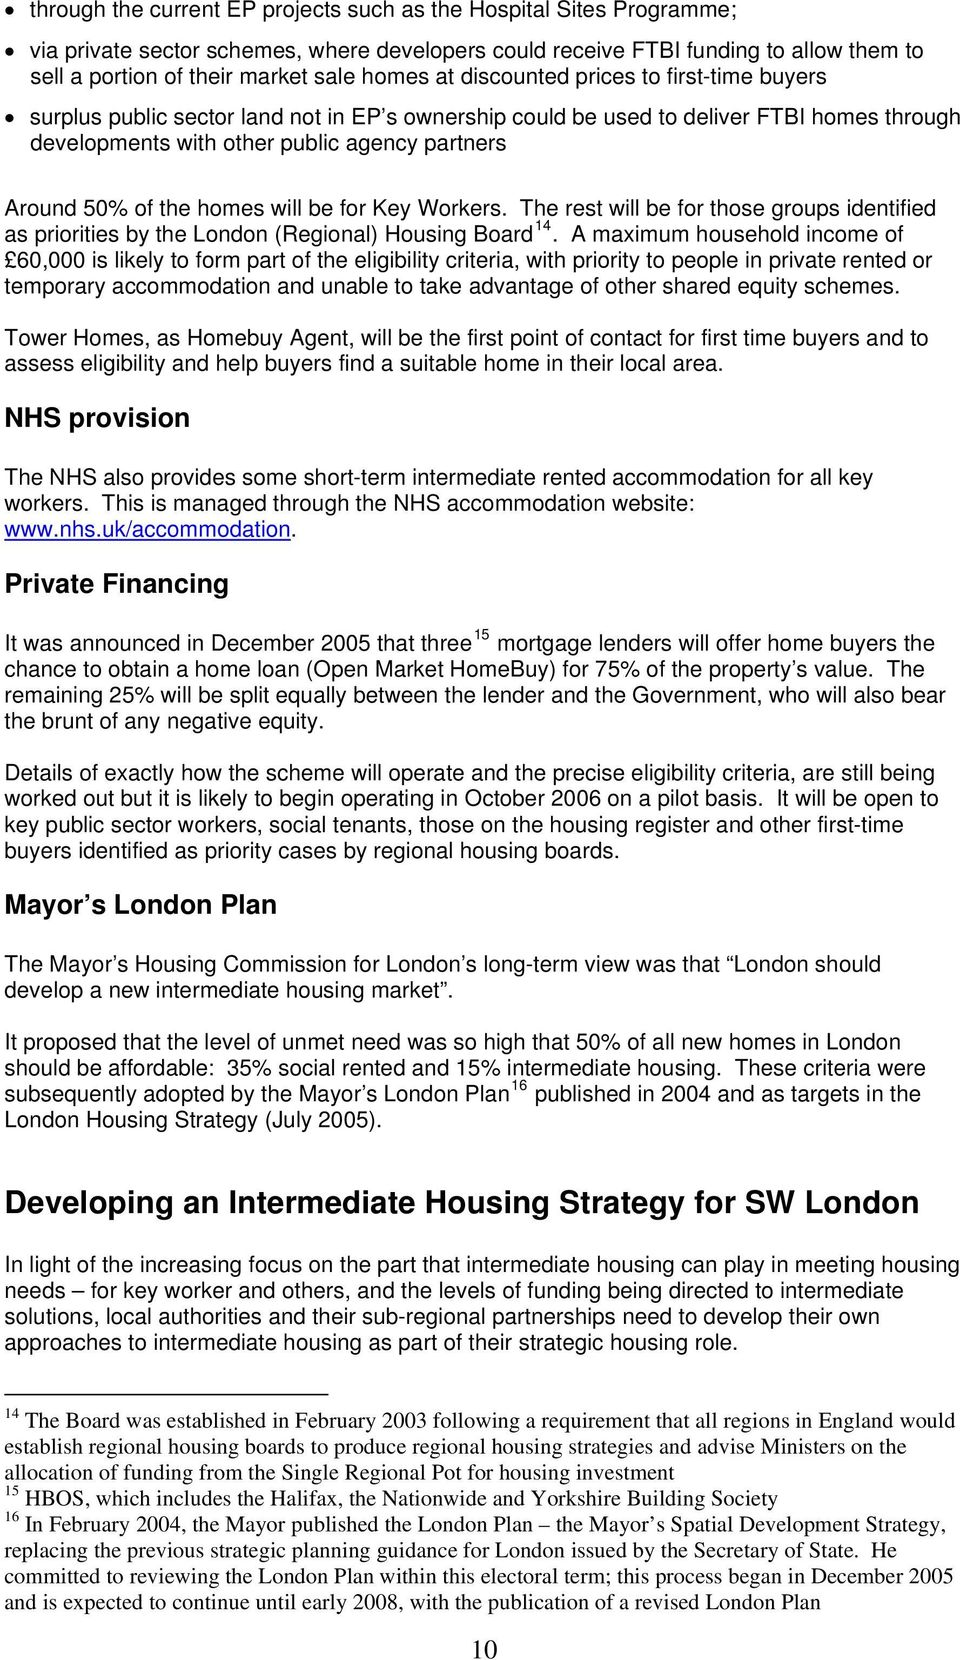 of the homes will be for Key Workers. The rest will be for those groups identified as priorities by the London (Regional) Housing Board 14.